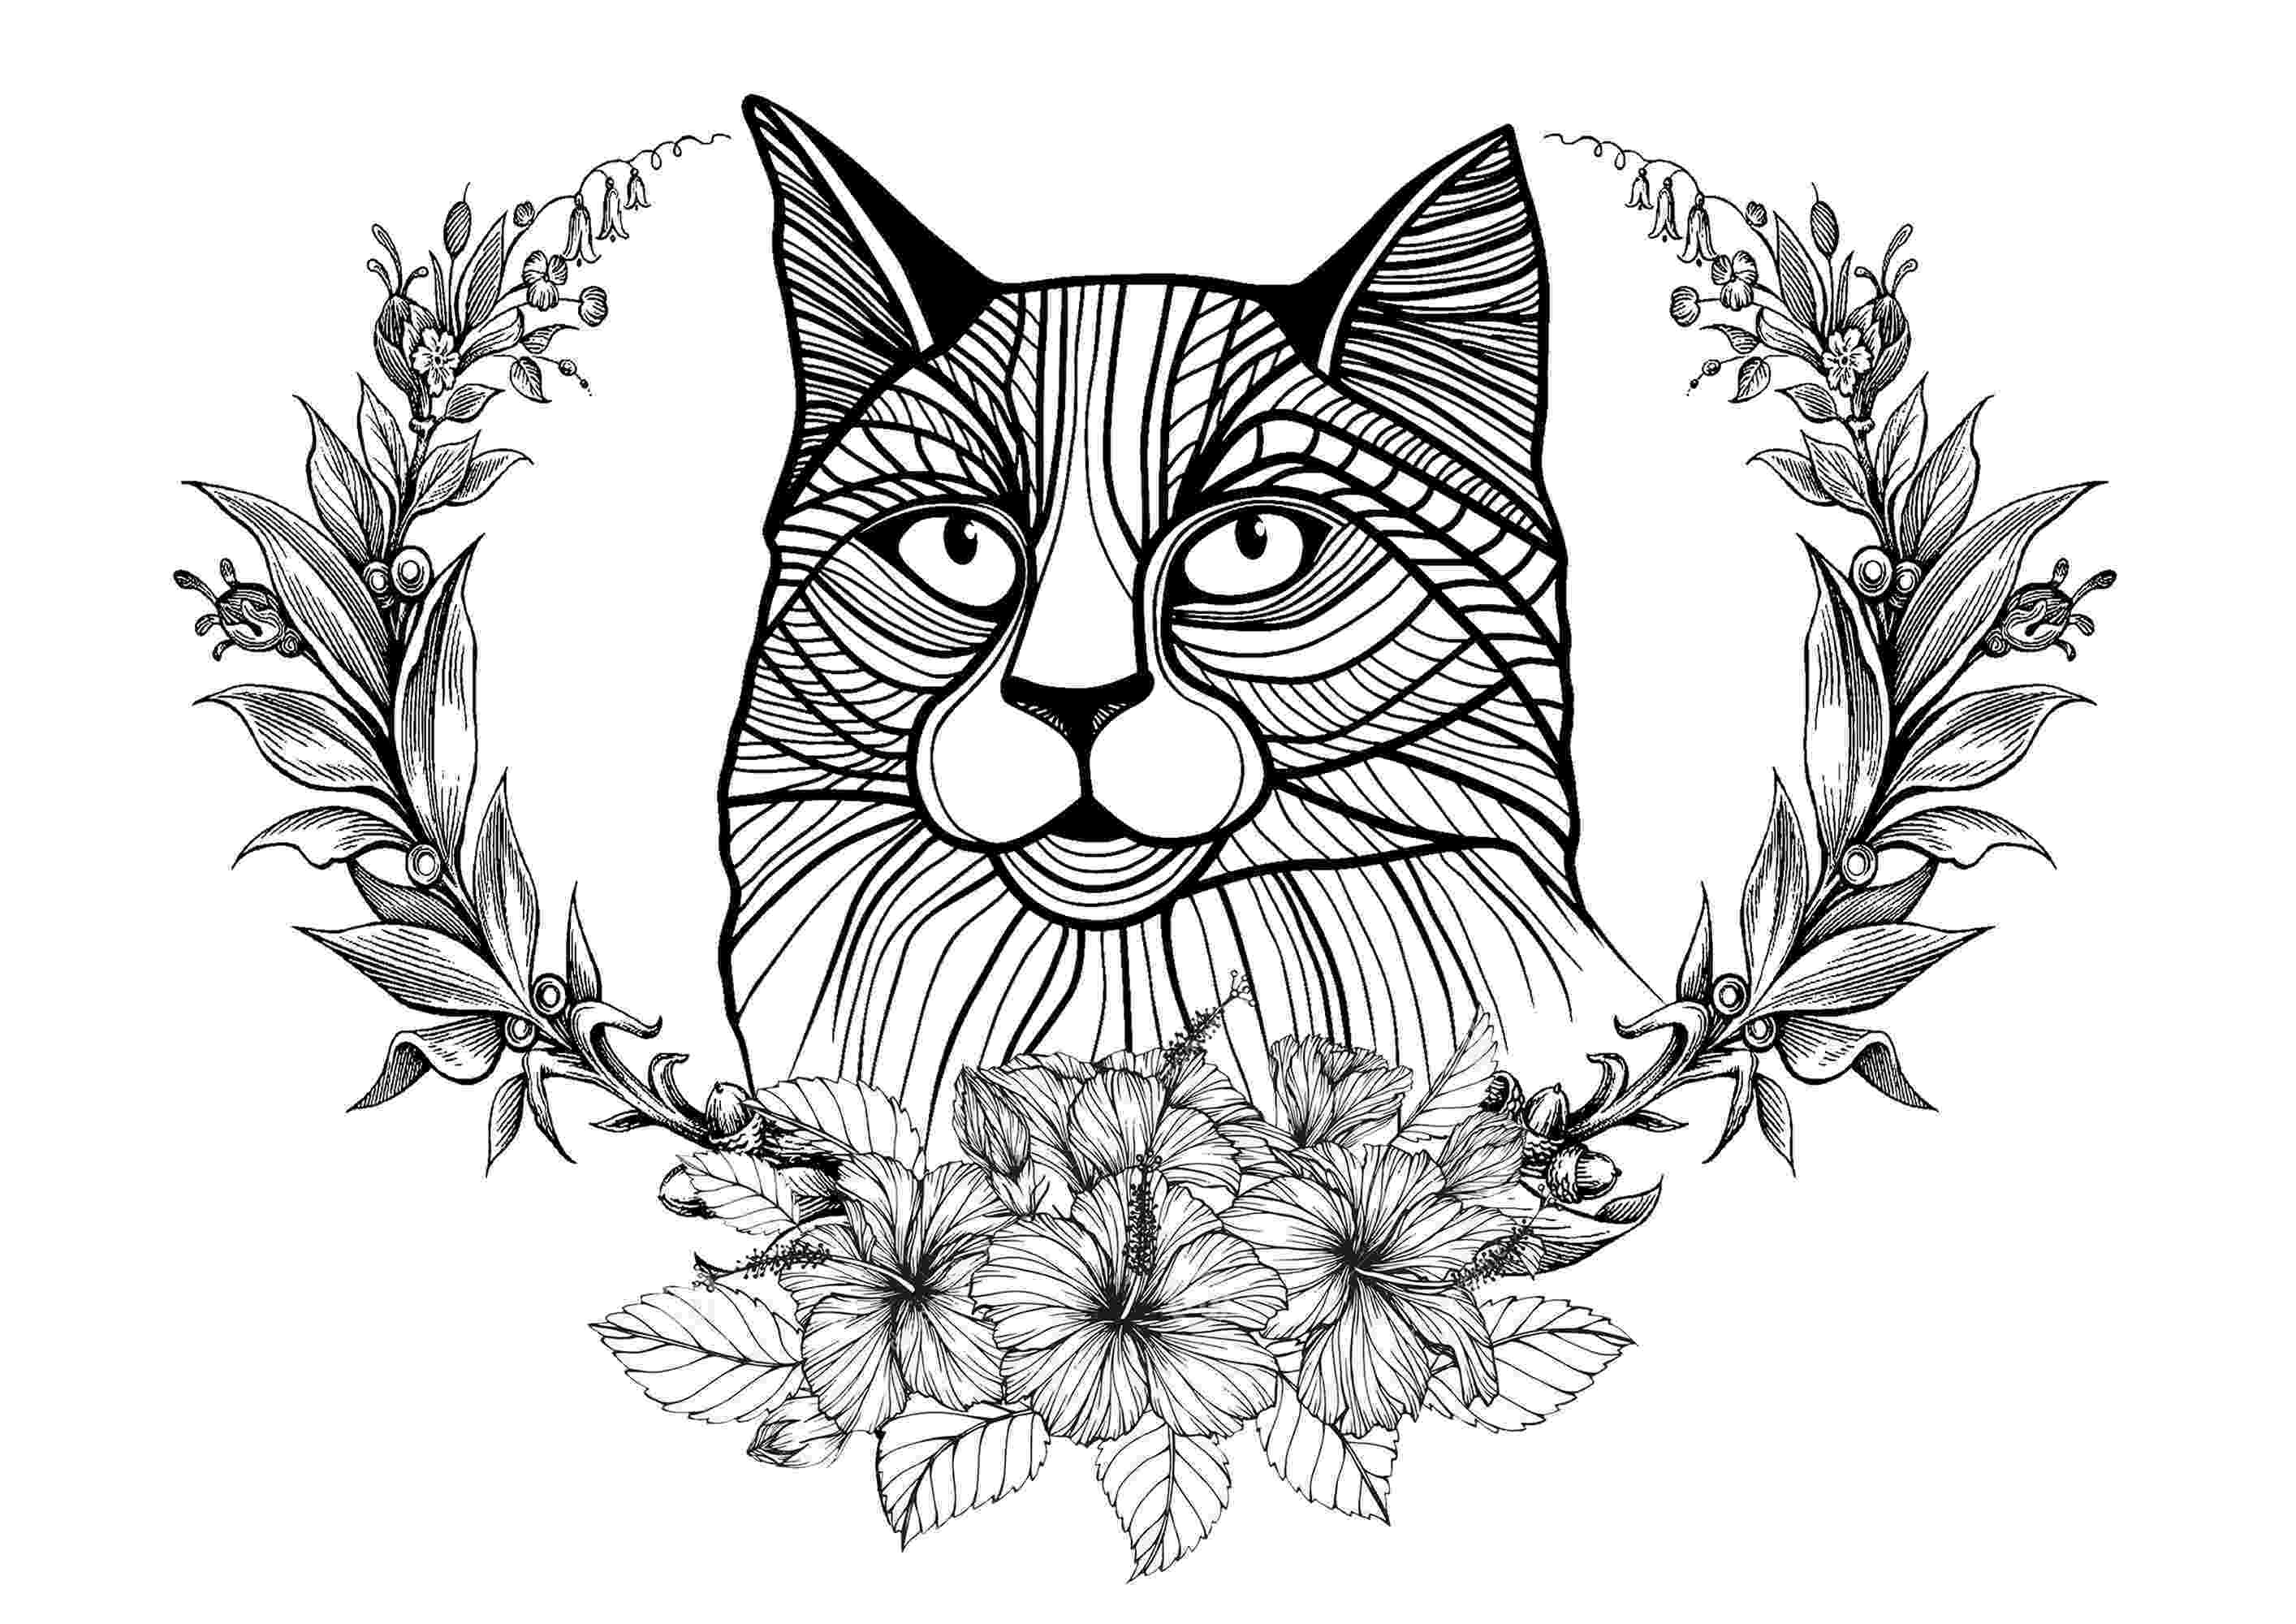 free online coloring pages for adults cats cat and laurel wreath cats adult coloring pages for adults cats coloring free online pages